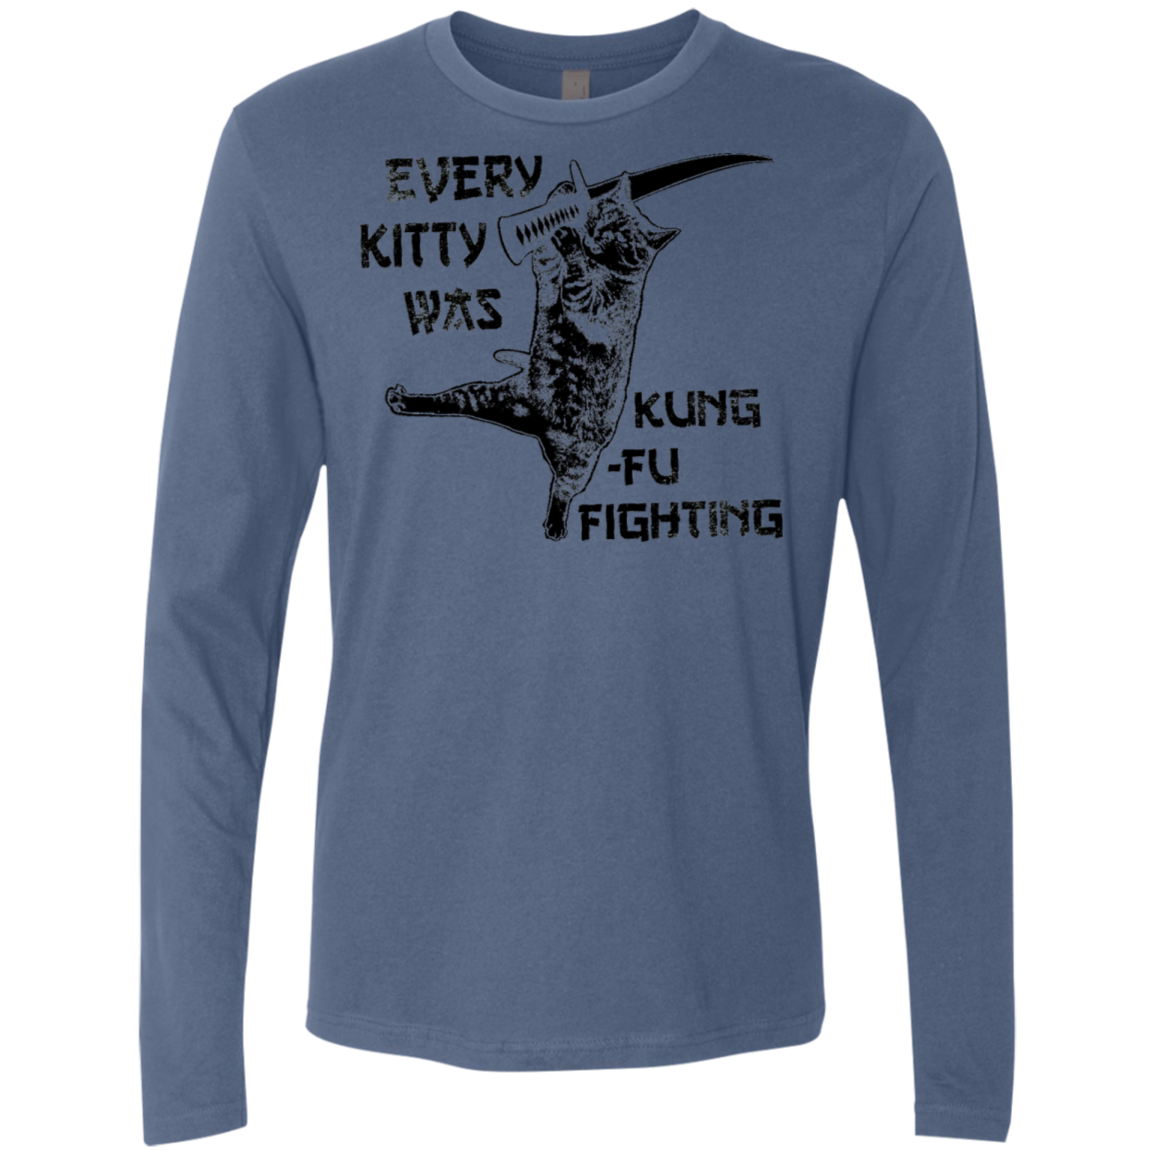 Every Kitty Was King Fu Fighting Men's Long Sleeve Tee